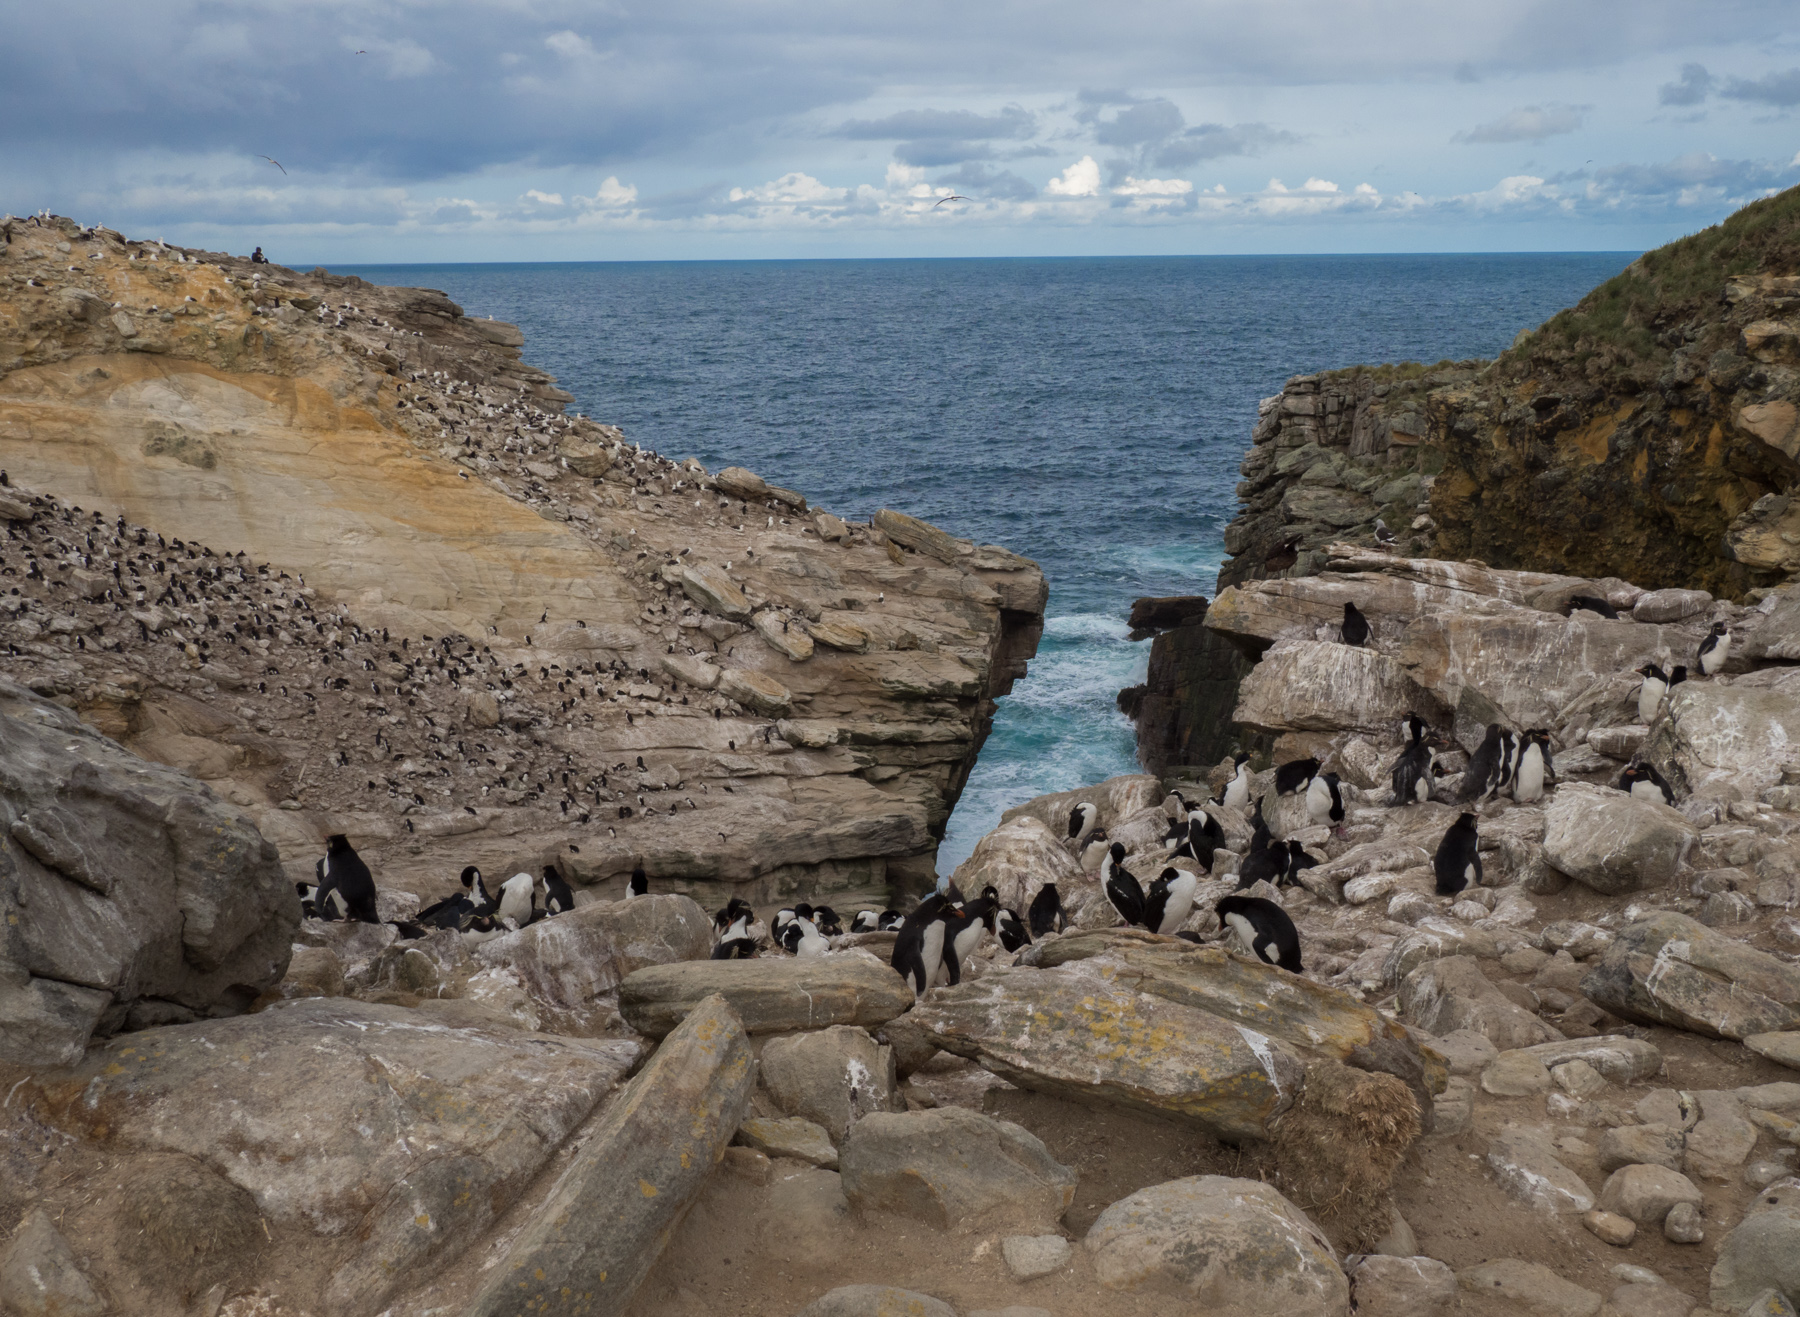 Rockhopper Penguins share the space at Coffin Harbour with Black-browed Albatross